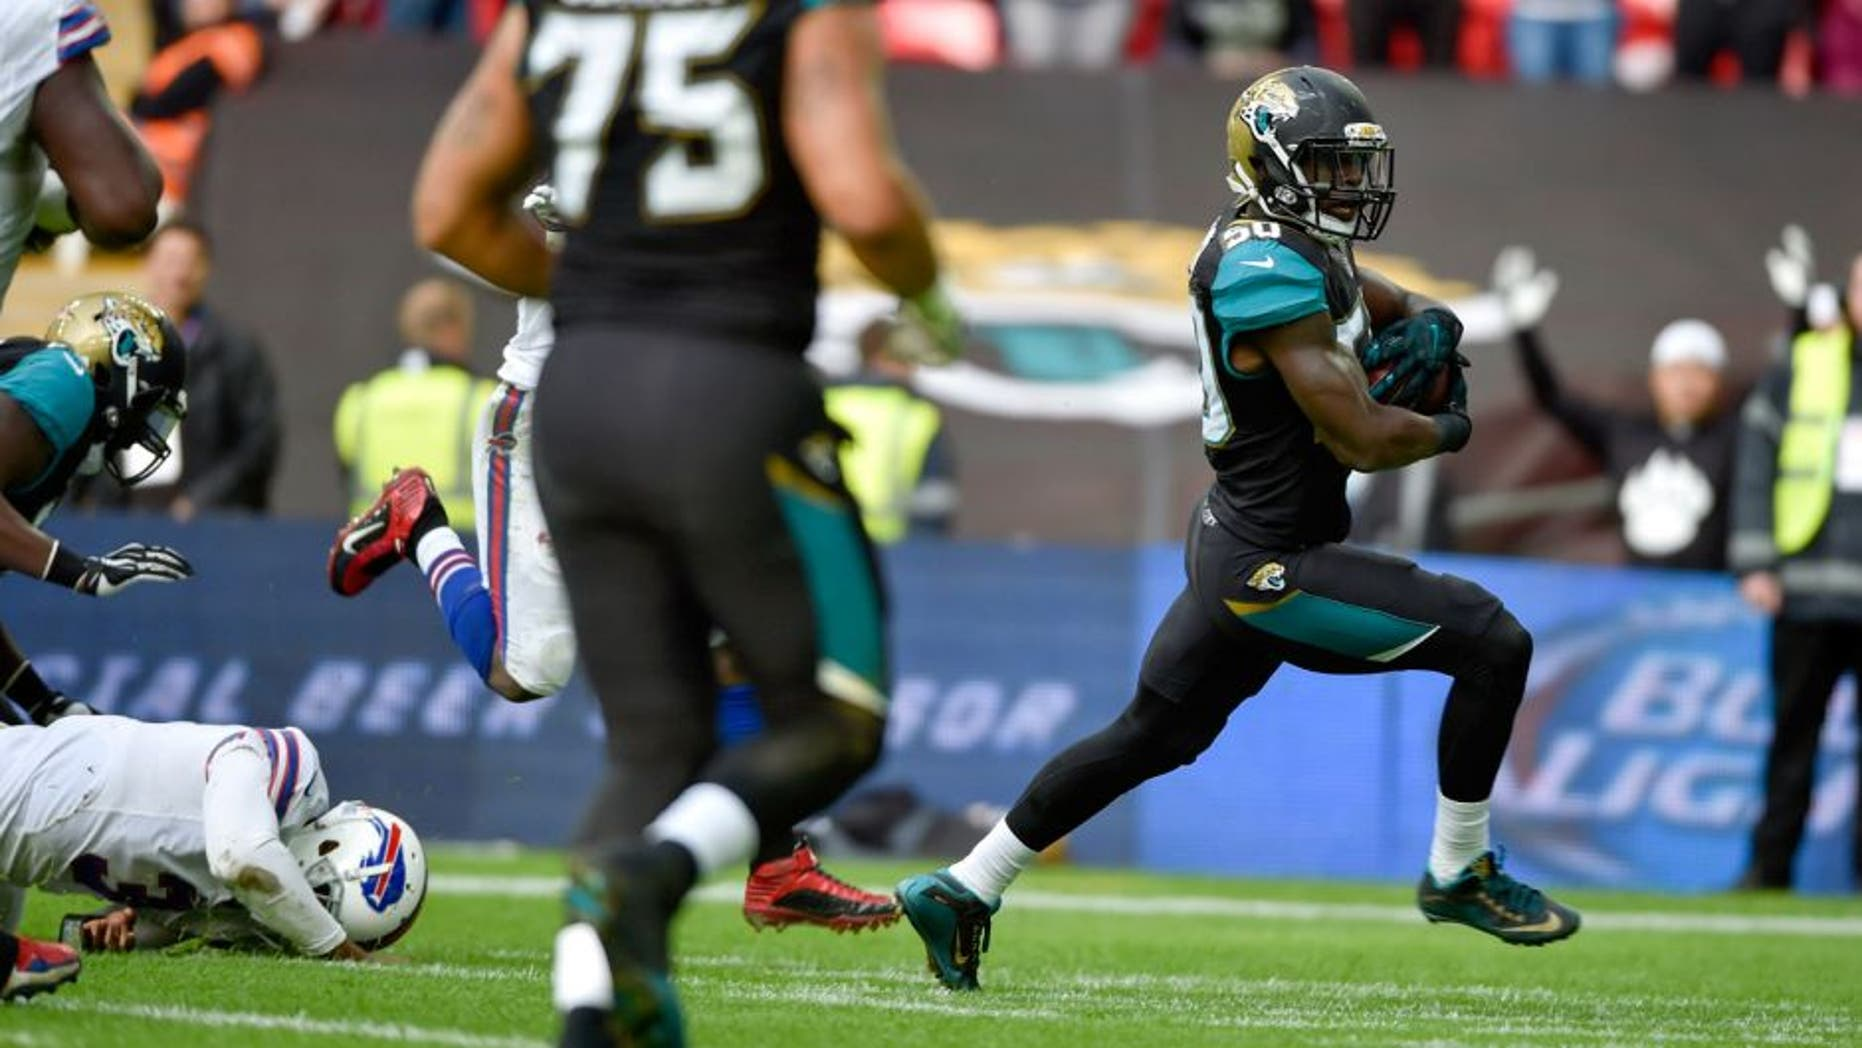 Oct 25, 2015; London, United Kingdom; Jacksonville Jaguars outside linebacker Telvin Smith (50) scores a touchdown during the first half of the game against the Buffalo Bills at Wembley Stadium. Mandatory Credit: Steve Flynn-USA TODAY Sports